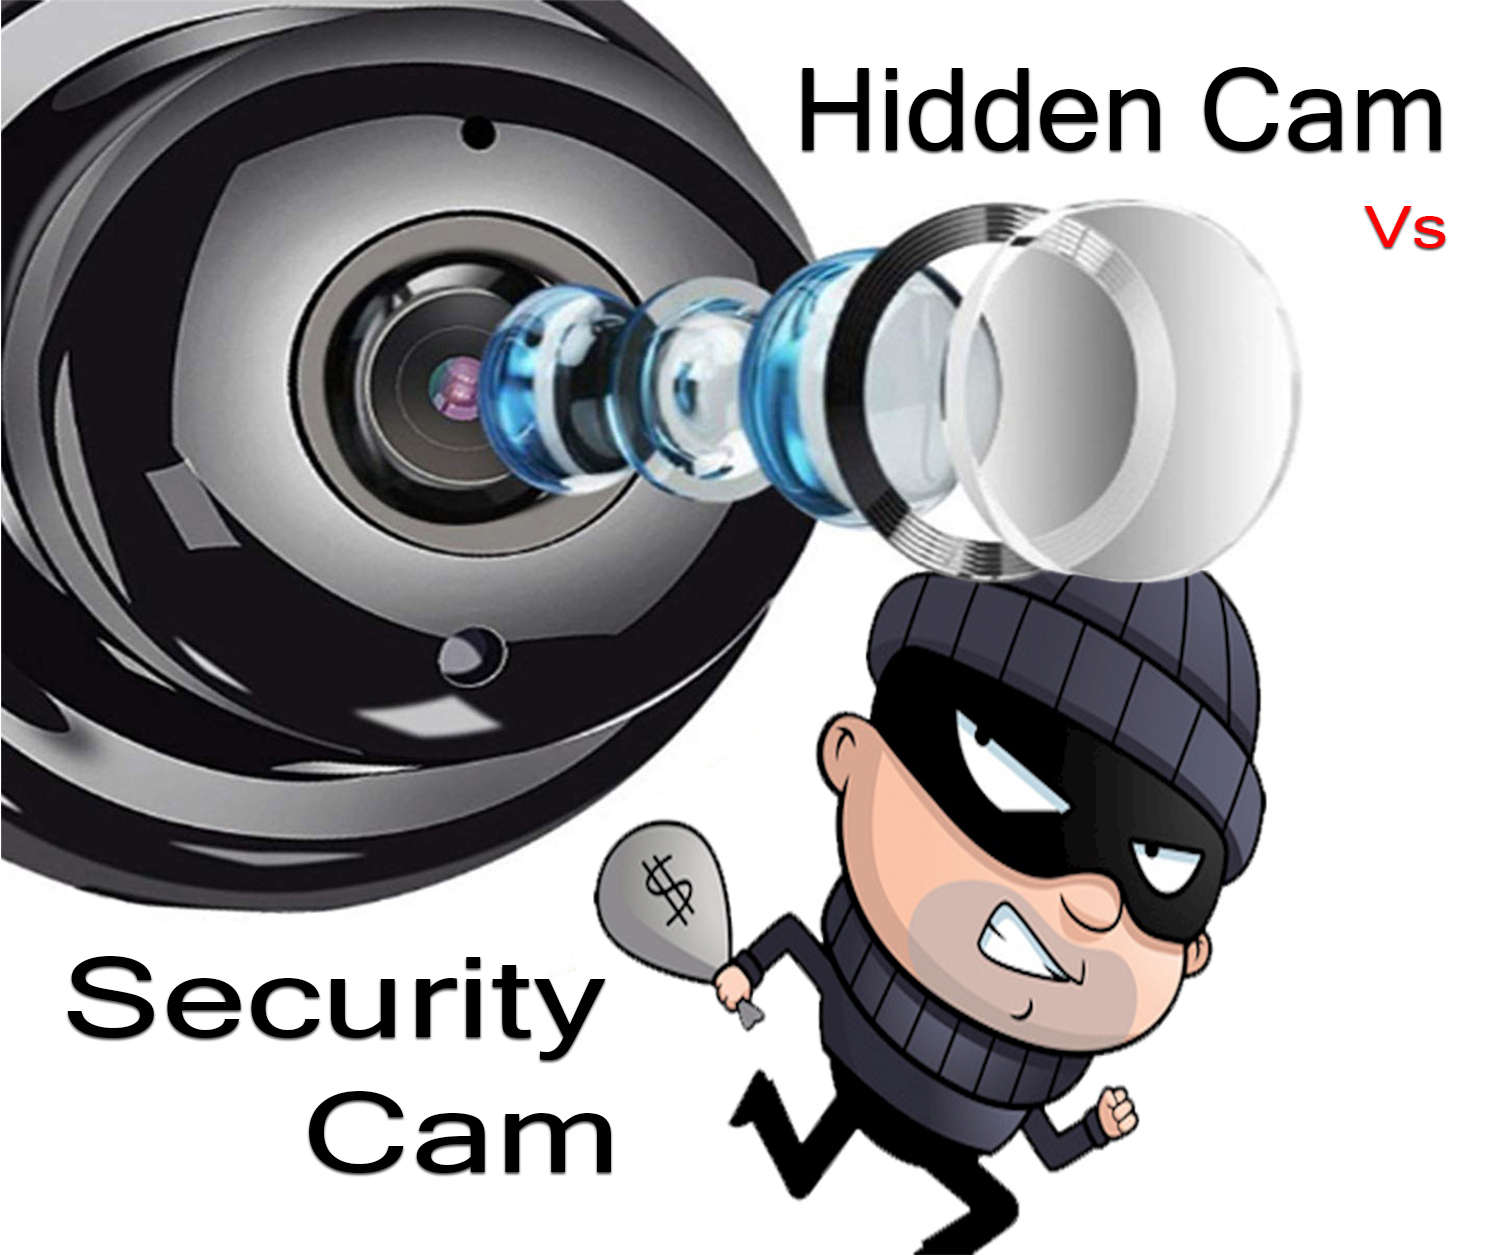 Hidden Cam Vs Security Cam mini Guide,small camera lens  and a thief with black mask running cartoon,